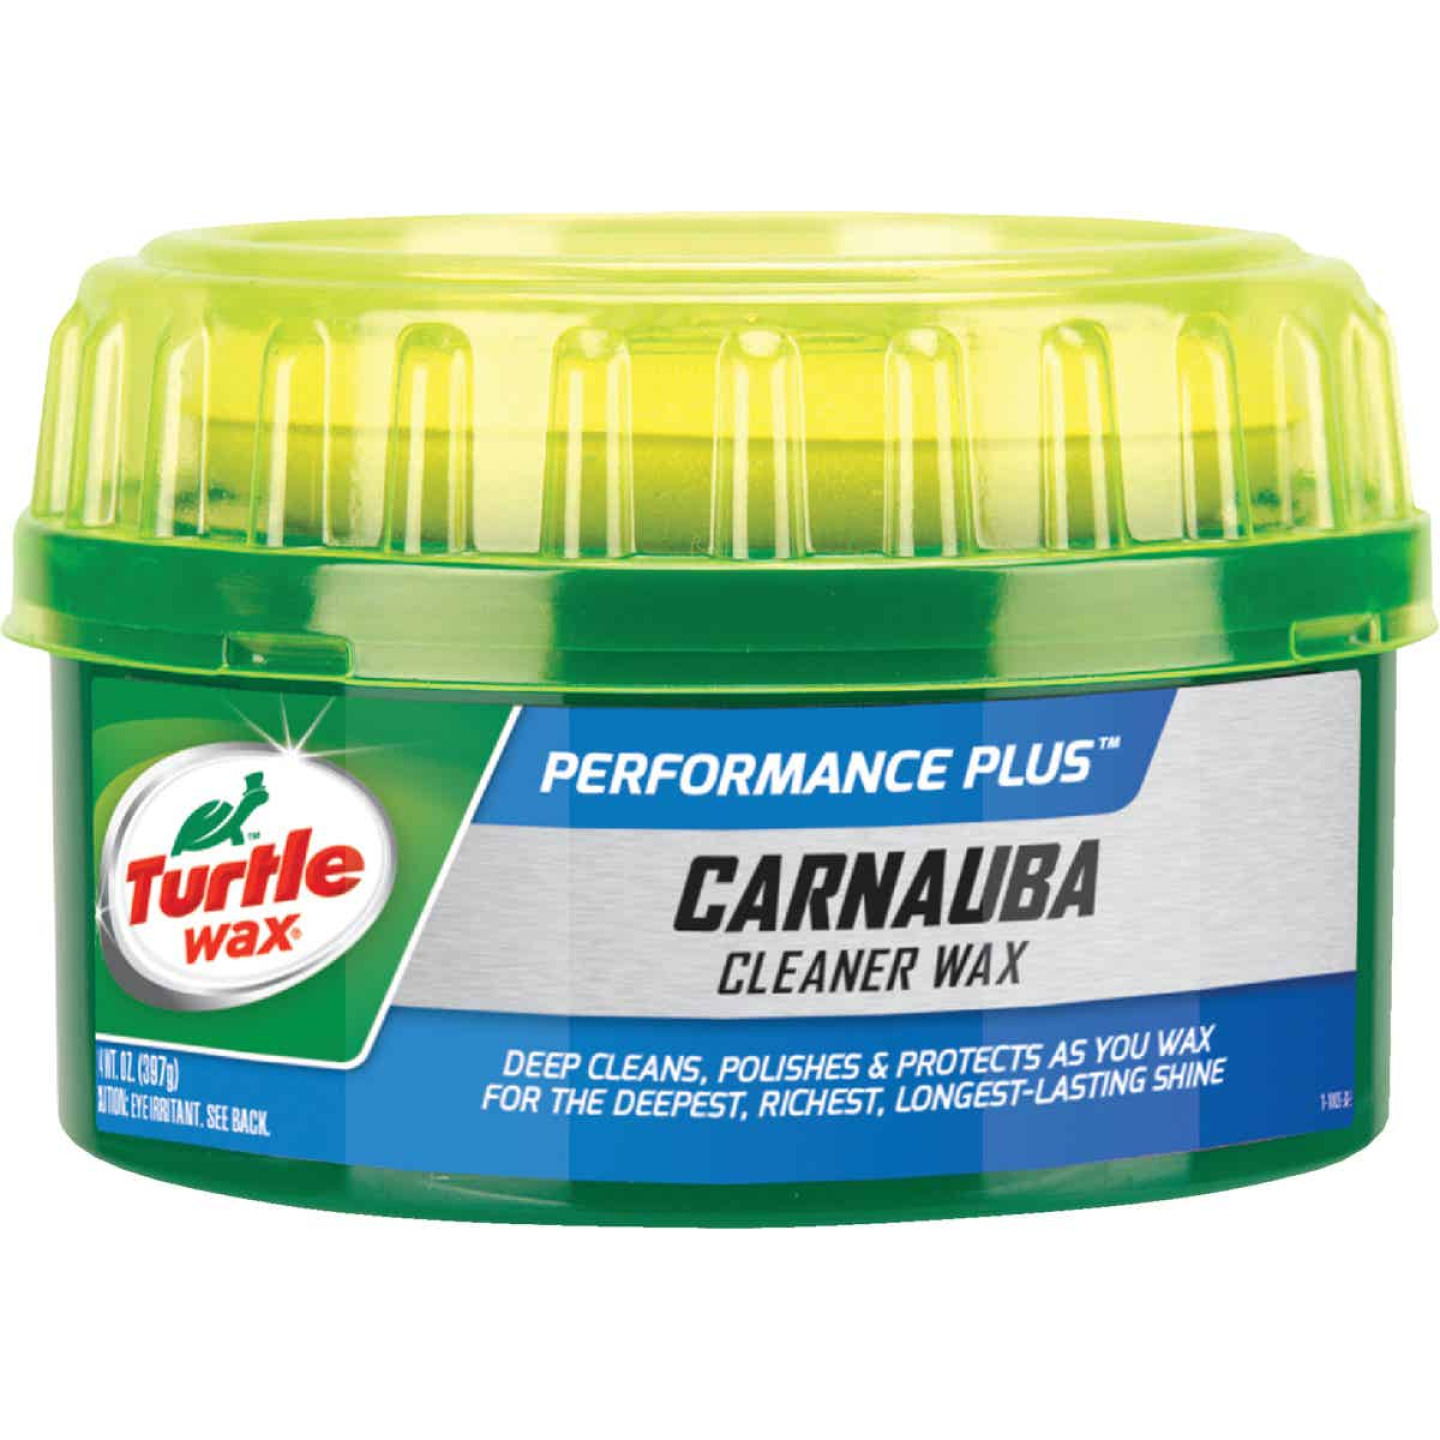 Turtle Wax 14 Oz. Carnauba Paste Car Wax Image 1